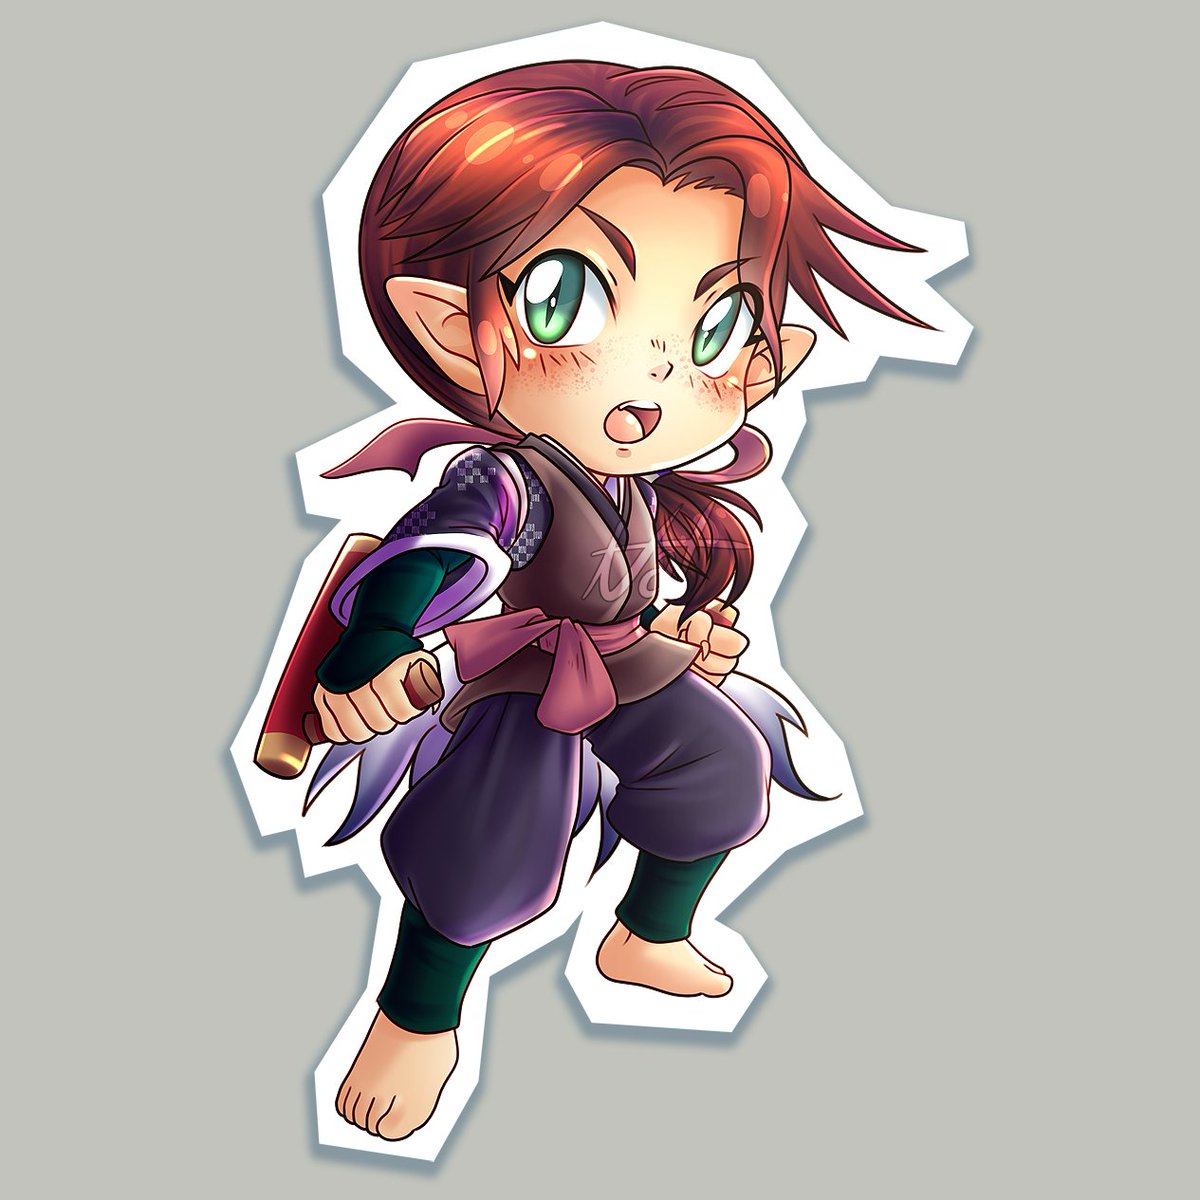 Chibi commission for a friend! #artcommission #chibiart #animeartist pic.twitter.com/FXvJ9Mvz89